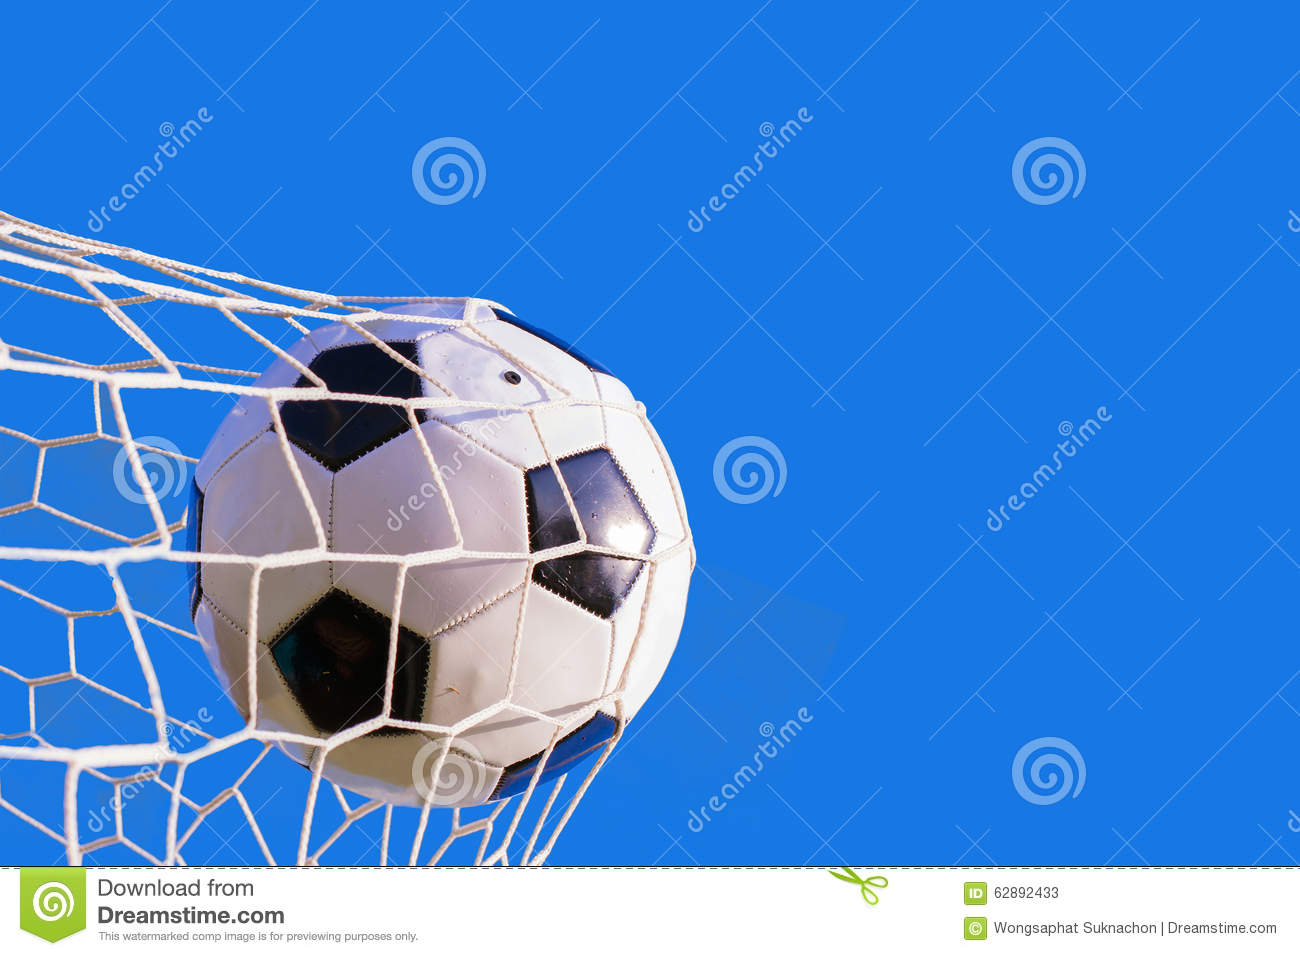 The Soccer Ball Hit Into The Net: Soccer Ball Hit The Net Stock Image. Image Of Lawn, Moving